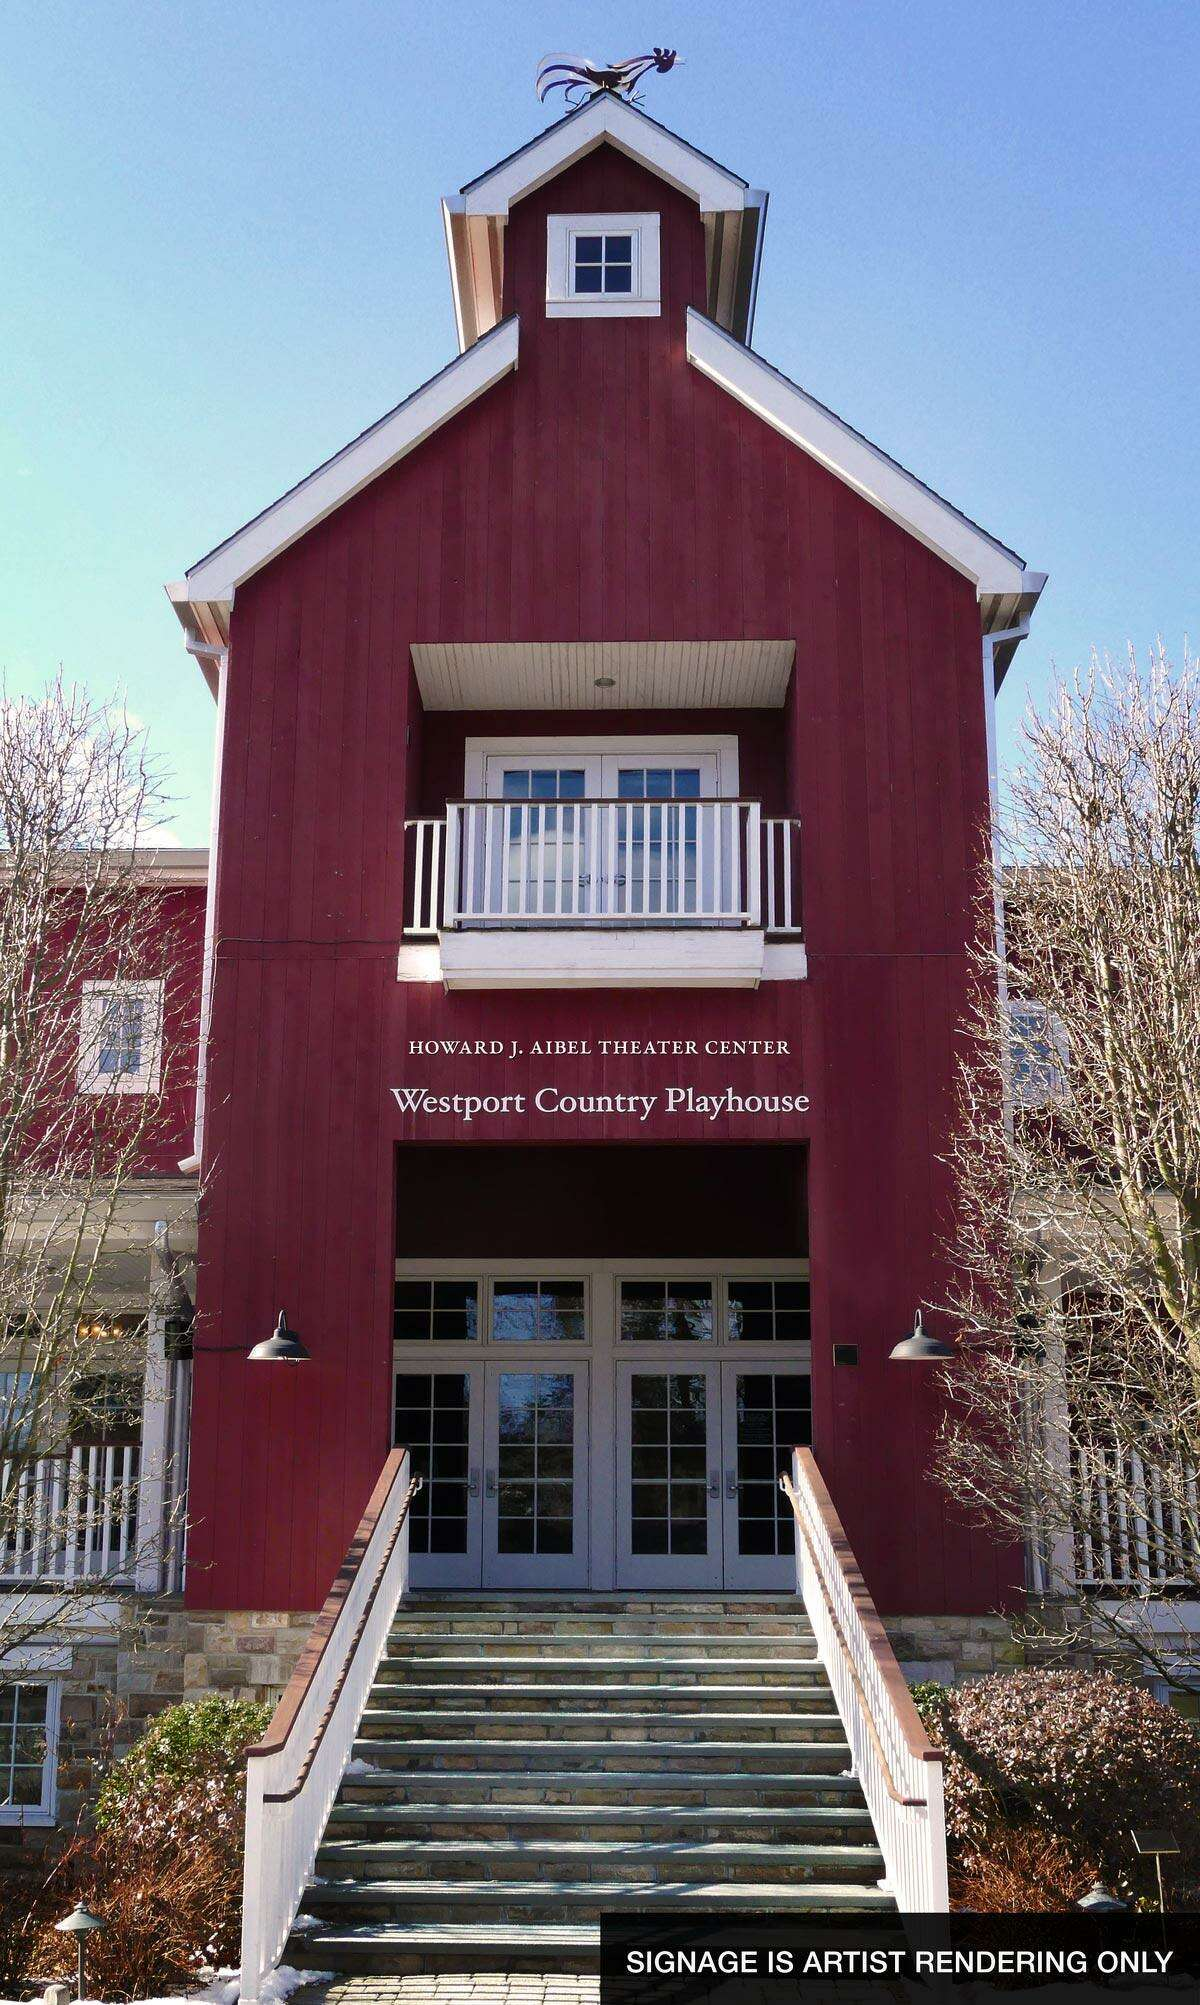 The Westport Country Playhouse announced Feb. 13 that it wiill rename its campus in honor of Howard J. Ailbel in honor of his $3 million donation to the organization.